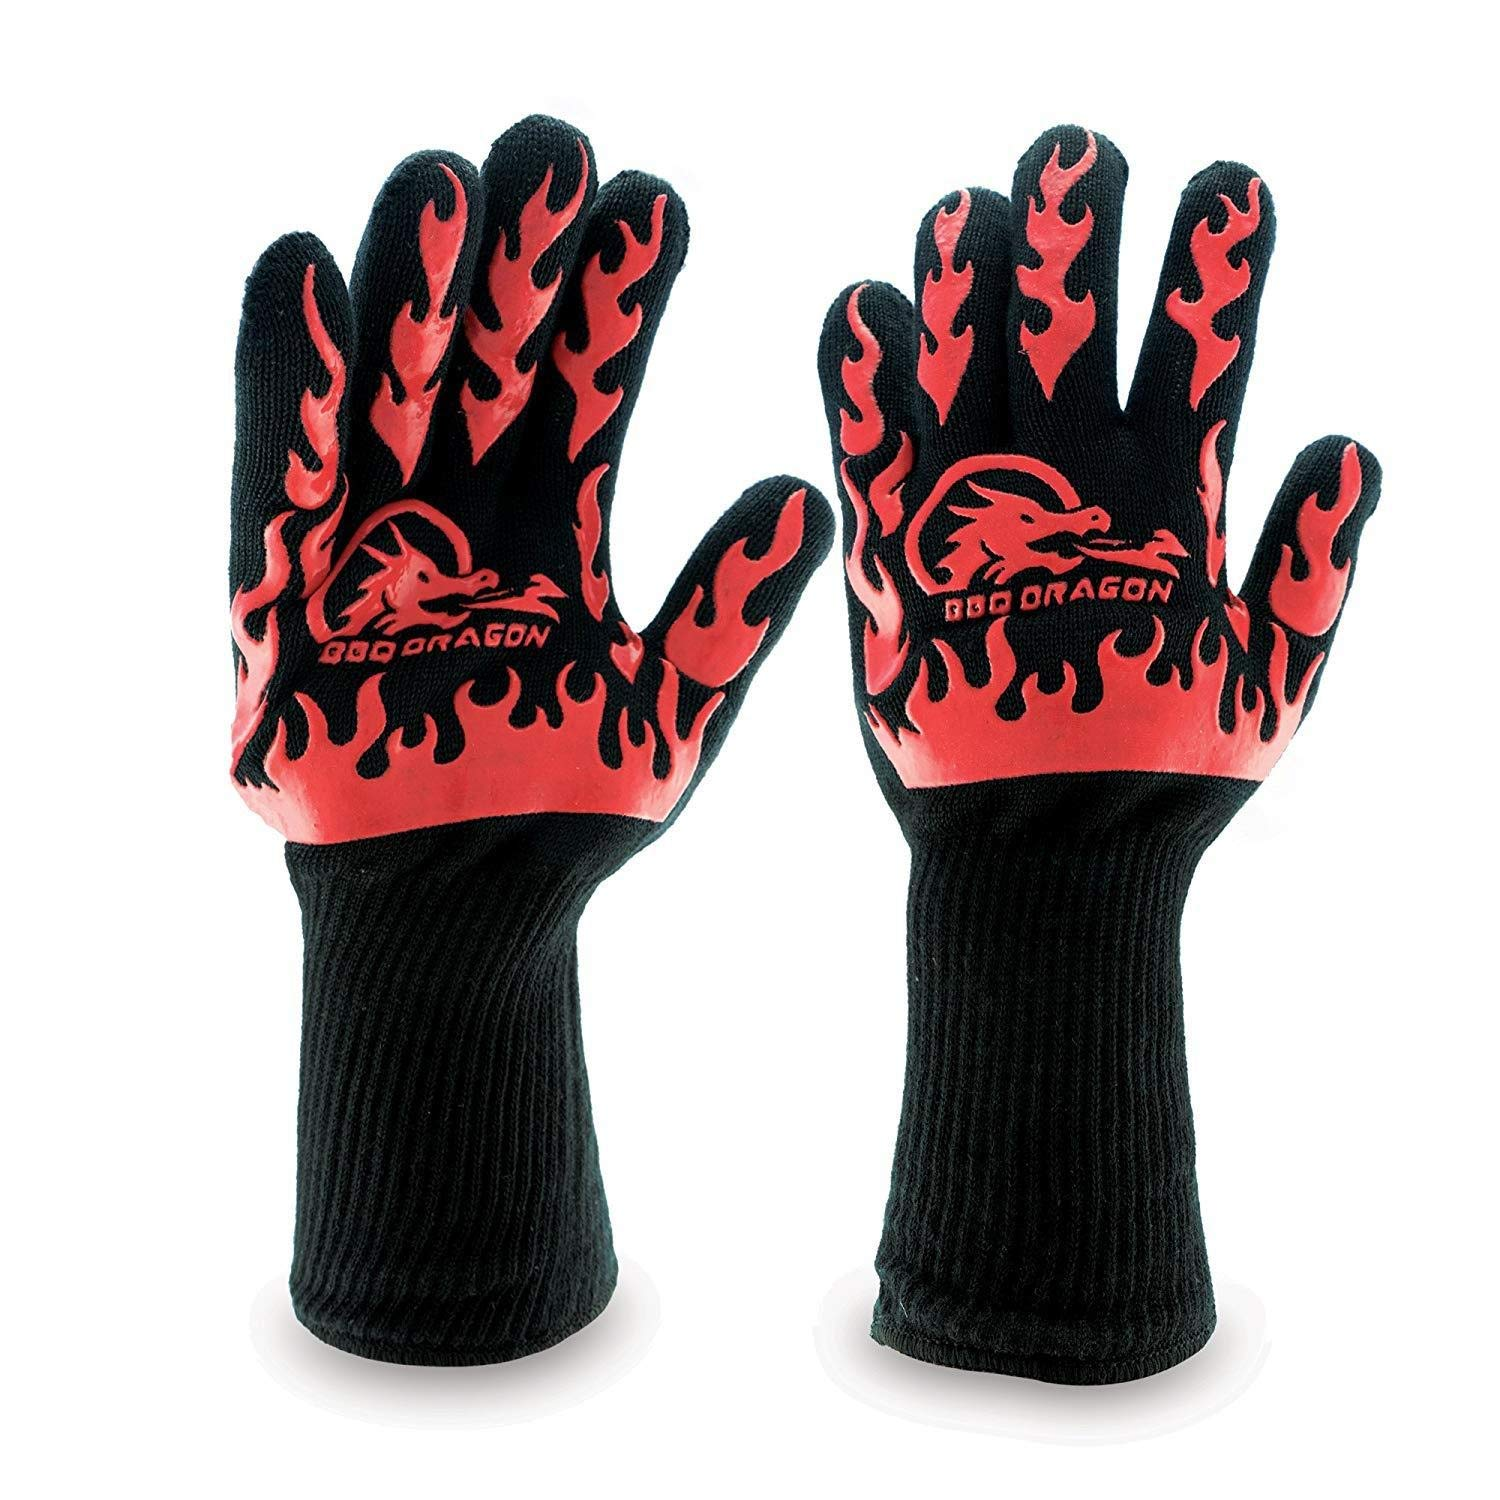 ZJYSM Comfortable Wearable Flexible Lightweight Aramid Knit High Temperature 500 Degree Microwave Oven Gloves Fireproof Hot Silicone BBQ Barbecue Insulation Hand Gloves